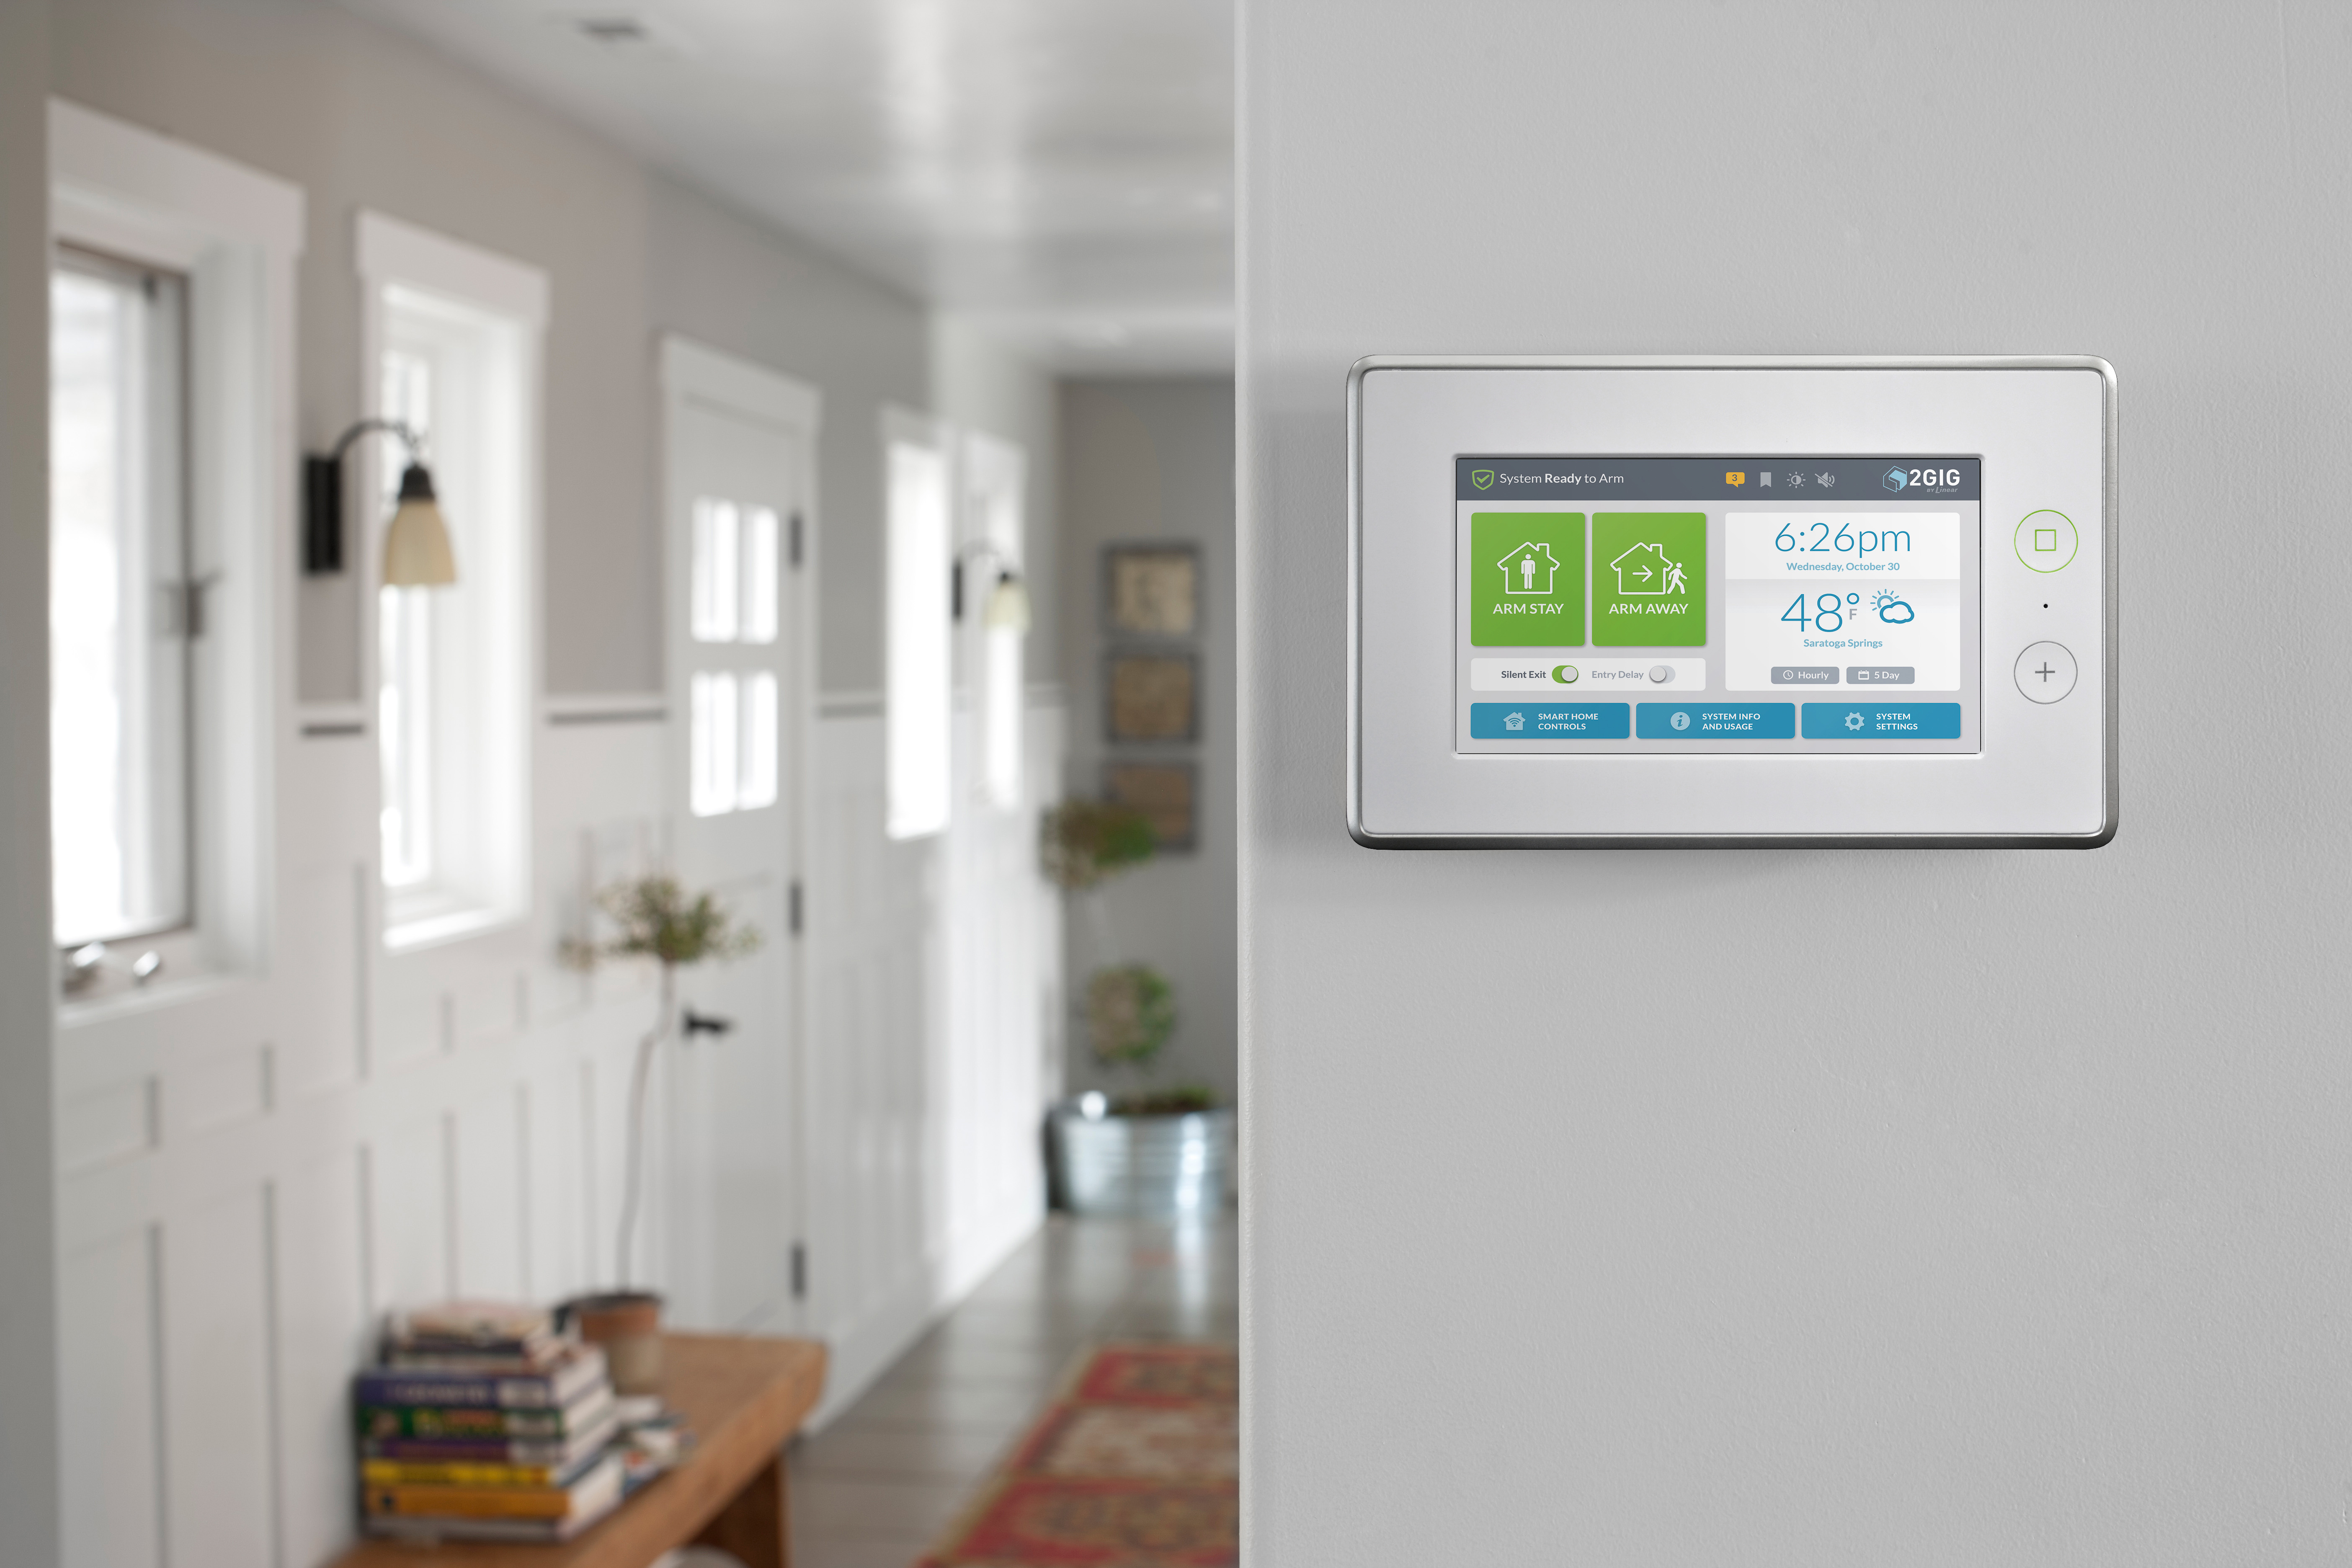 Security Alarm, Home Automation